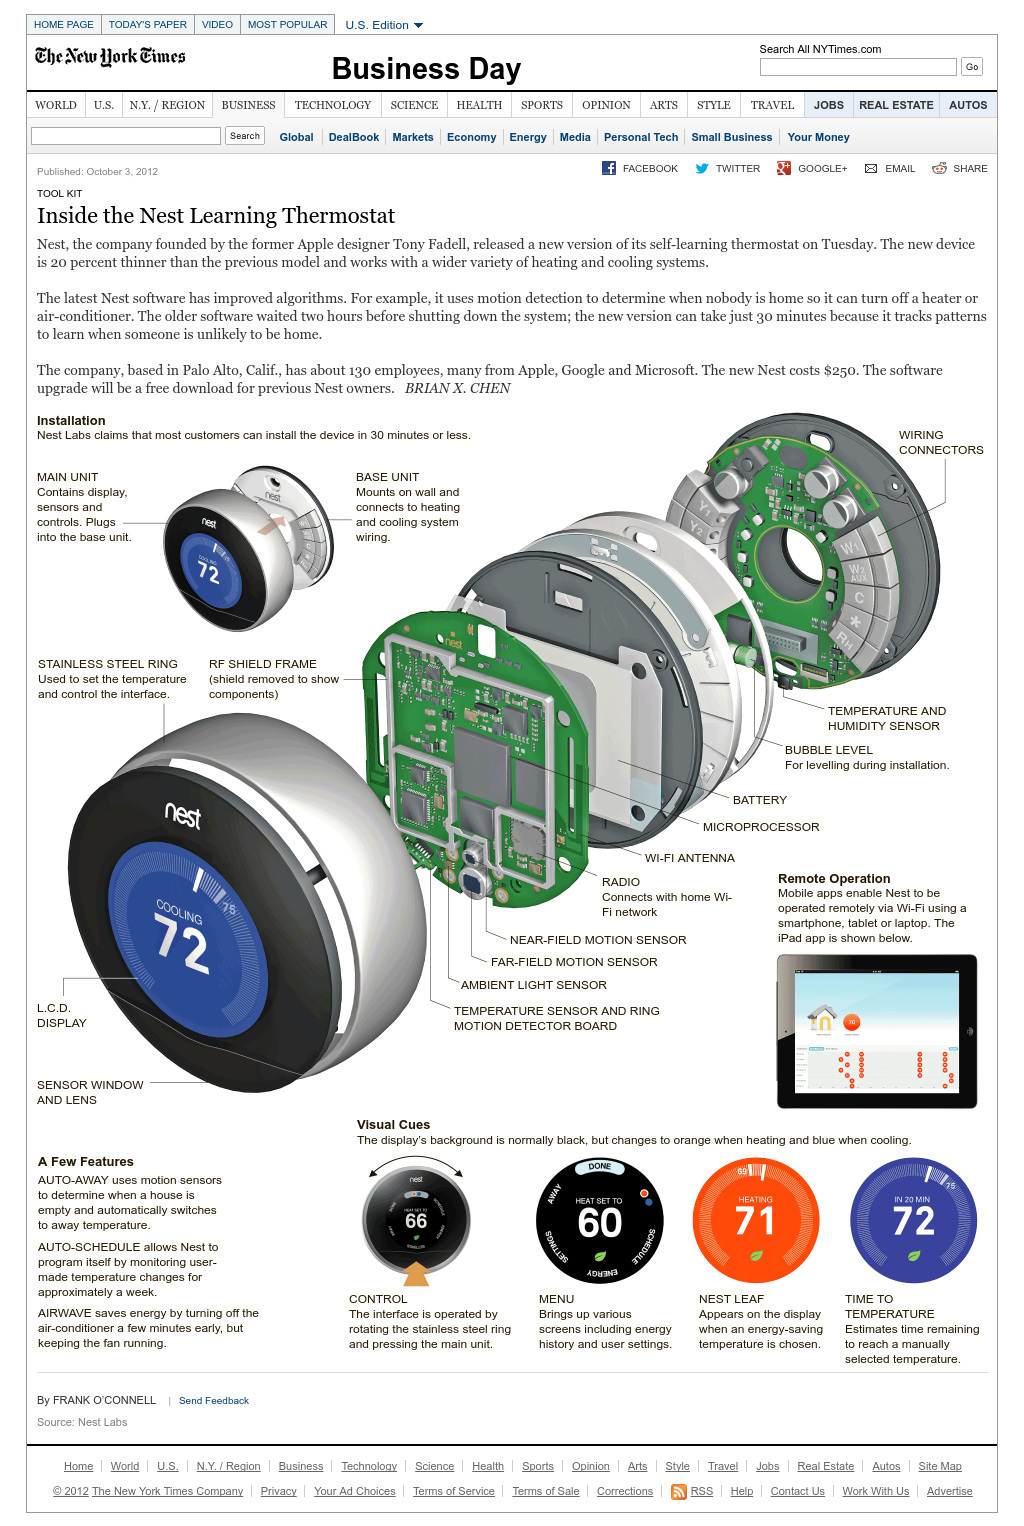 Nest Thermostat Wiring Diagram For Furnace And Air Conditioning - Nest Base Wiring Diagram